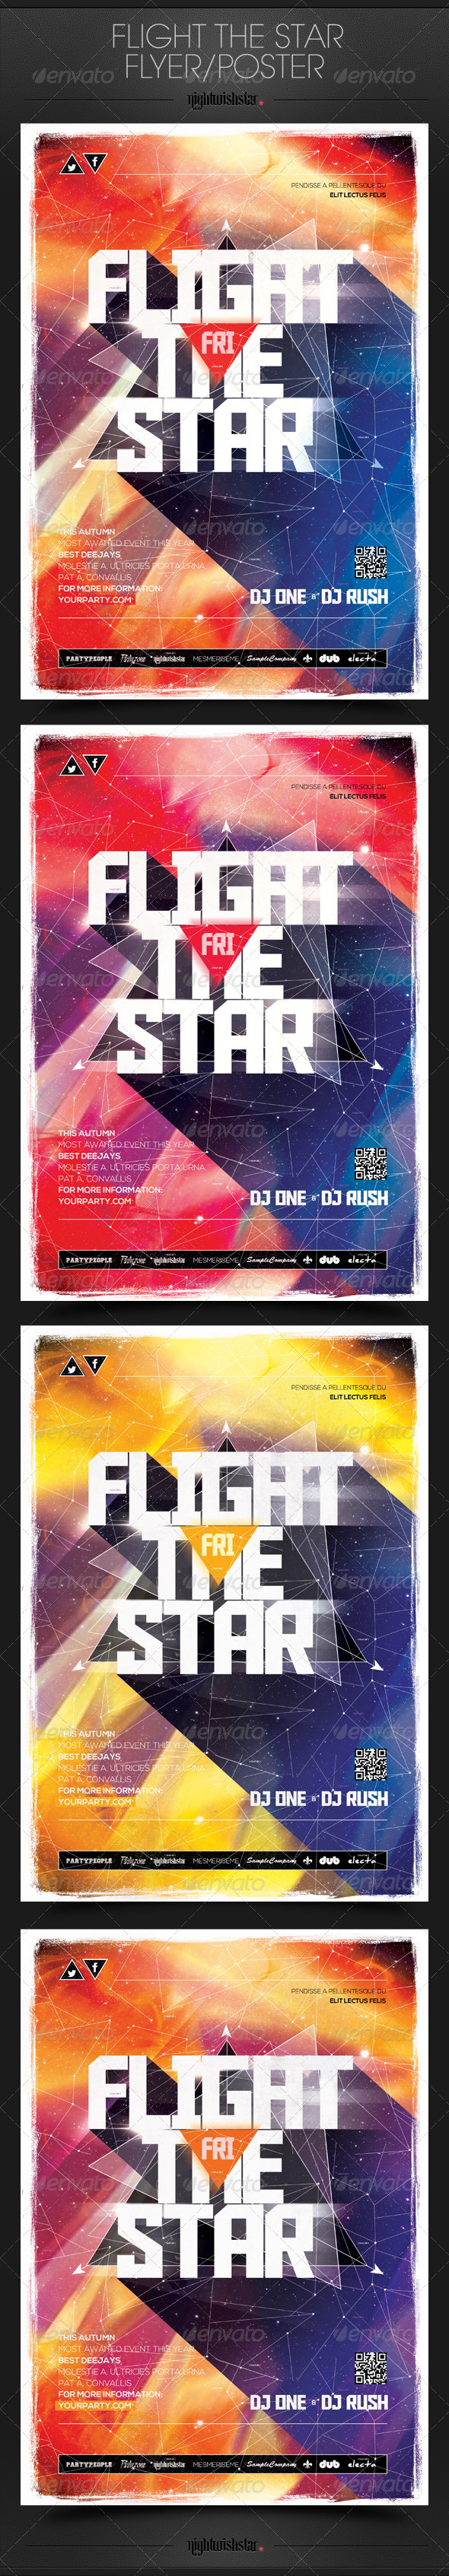 GraphicRiver Flight Star Party Poster Flyer 6862586